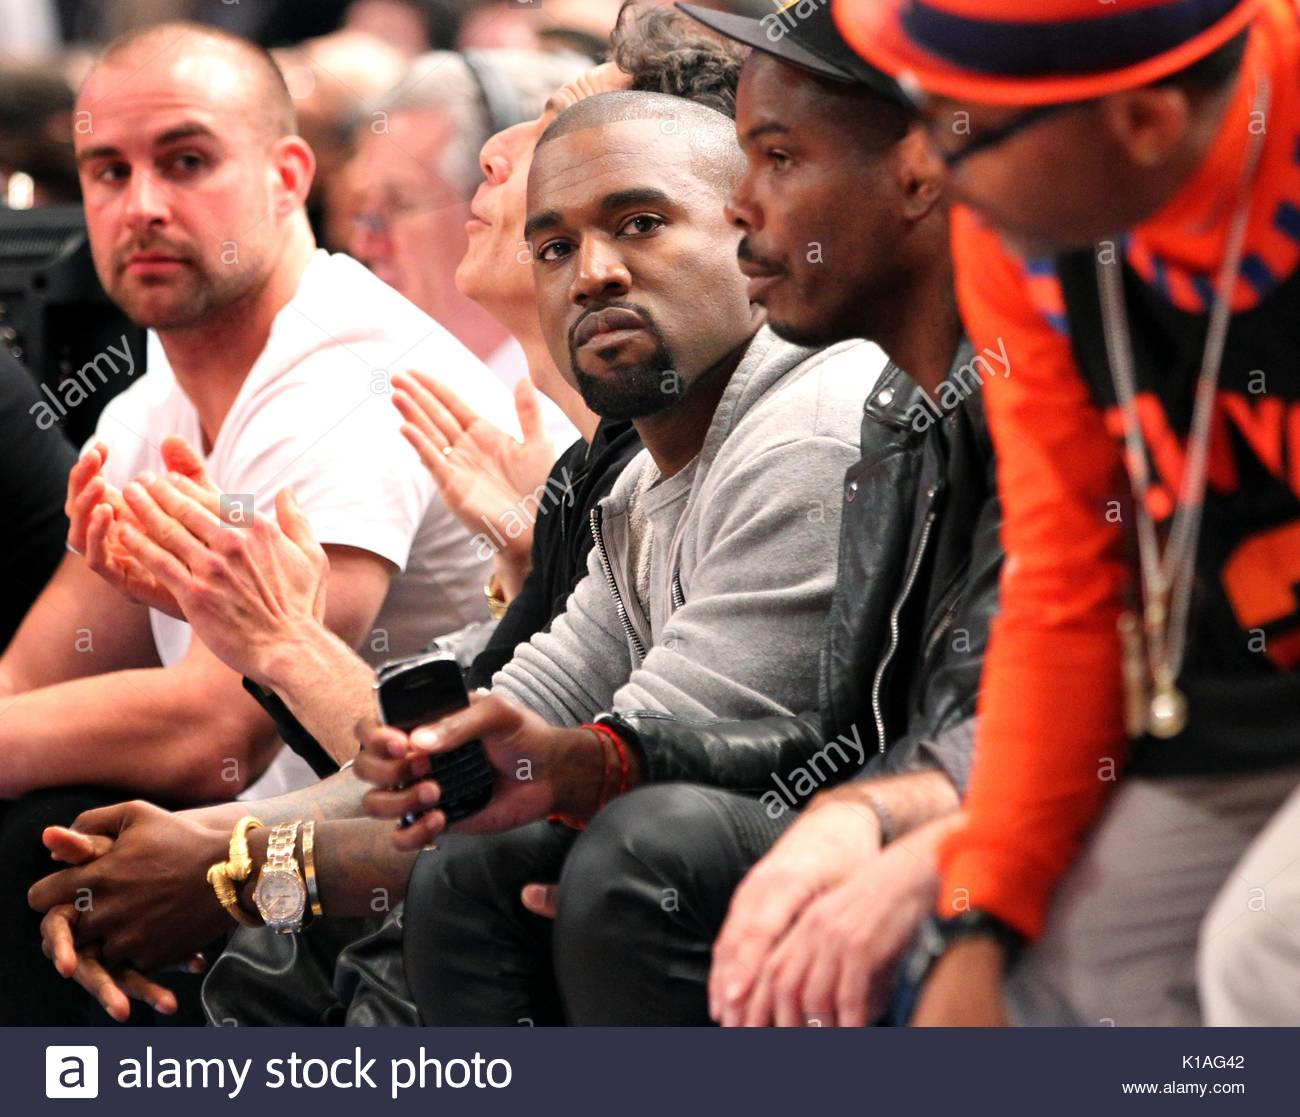 Kanye West. Kanye West, Ben Stiller And Mayor Michael Bloomberg Were In  Attendance At The Miami Heat Vs. New York Knicks Game At Madison Square  Garden.